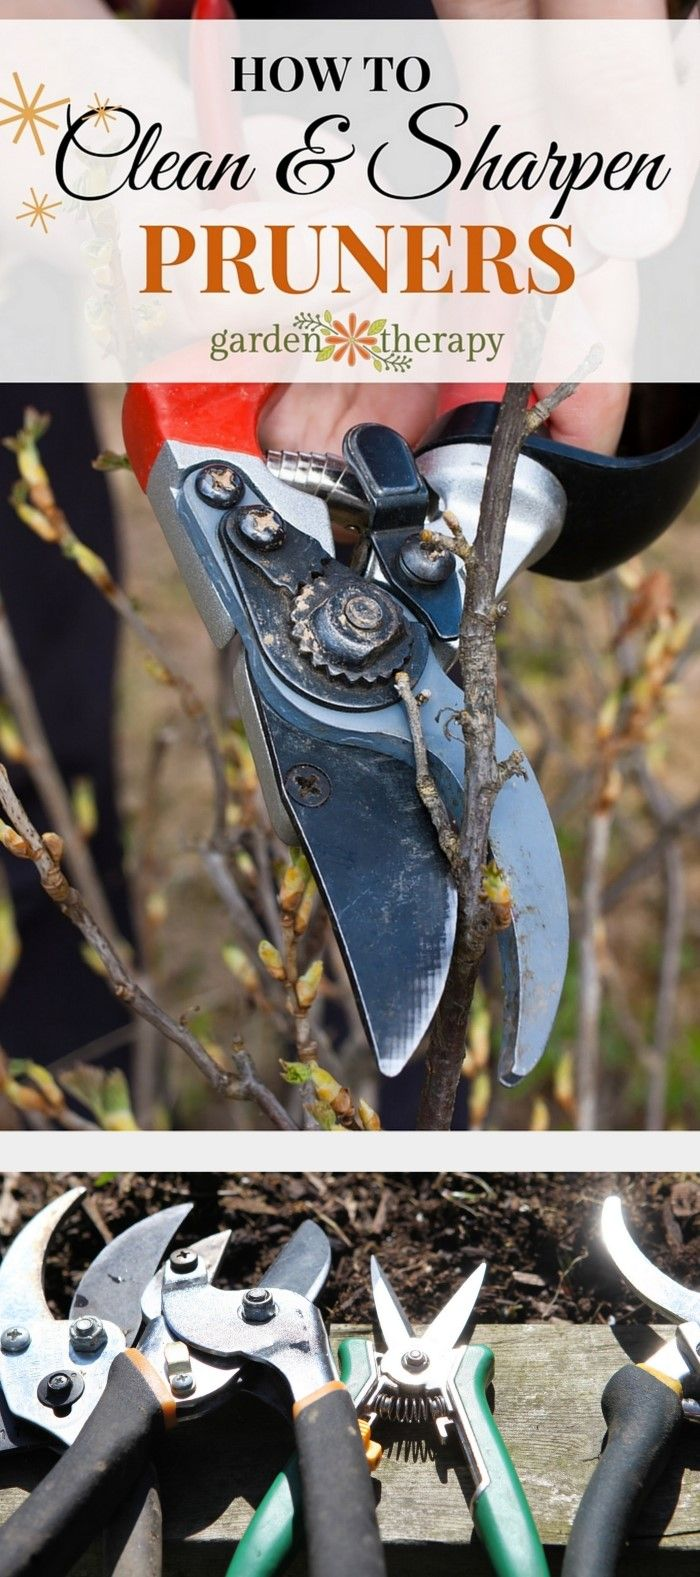 How to Care For Pruners - Follow these simple steps to keep your pruners in tip-...